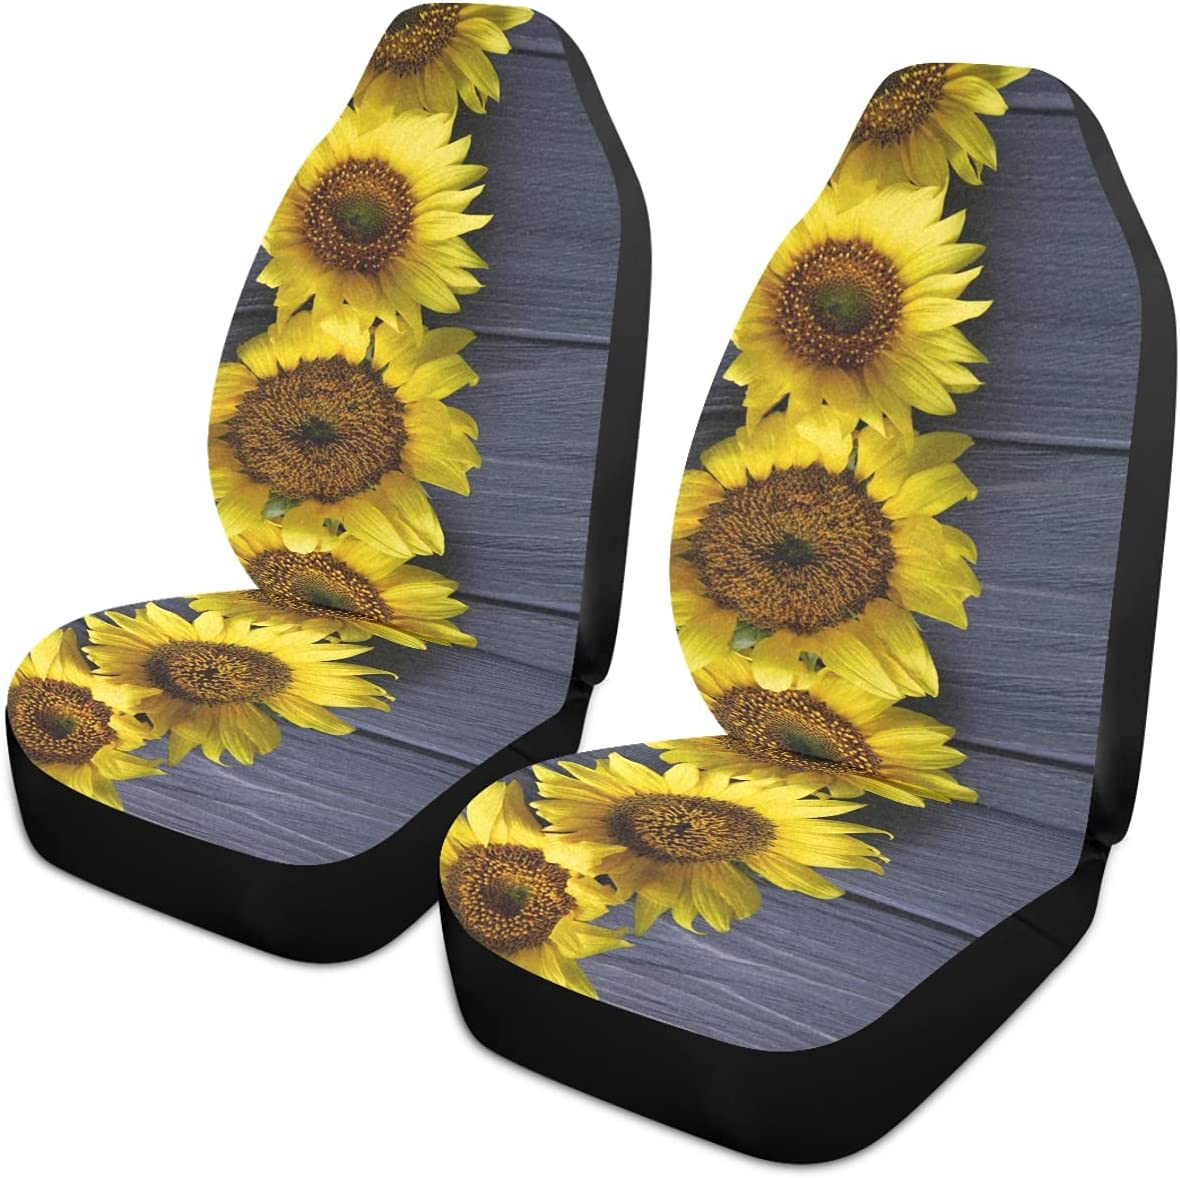 Oarencol Sunflowers Gray Wooden Discount mail order Car Seat Un 2021 new Yellow Flower Covers